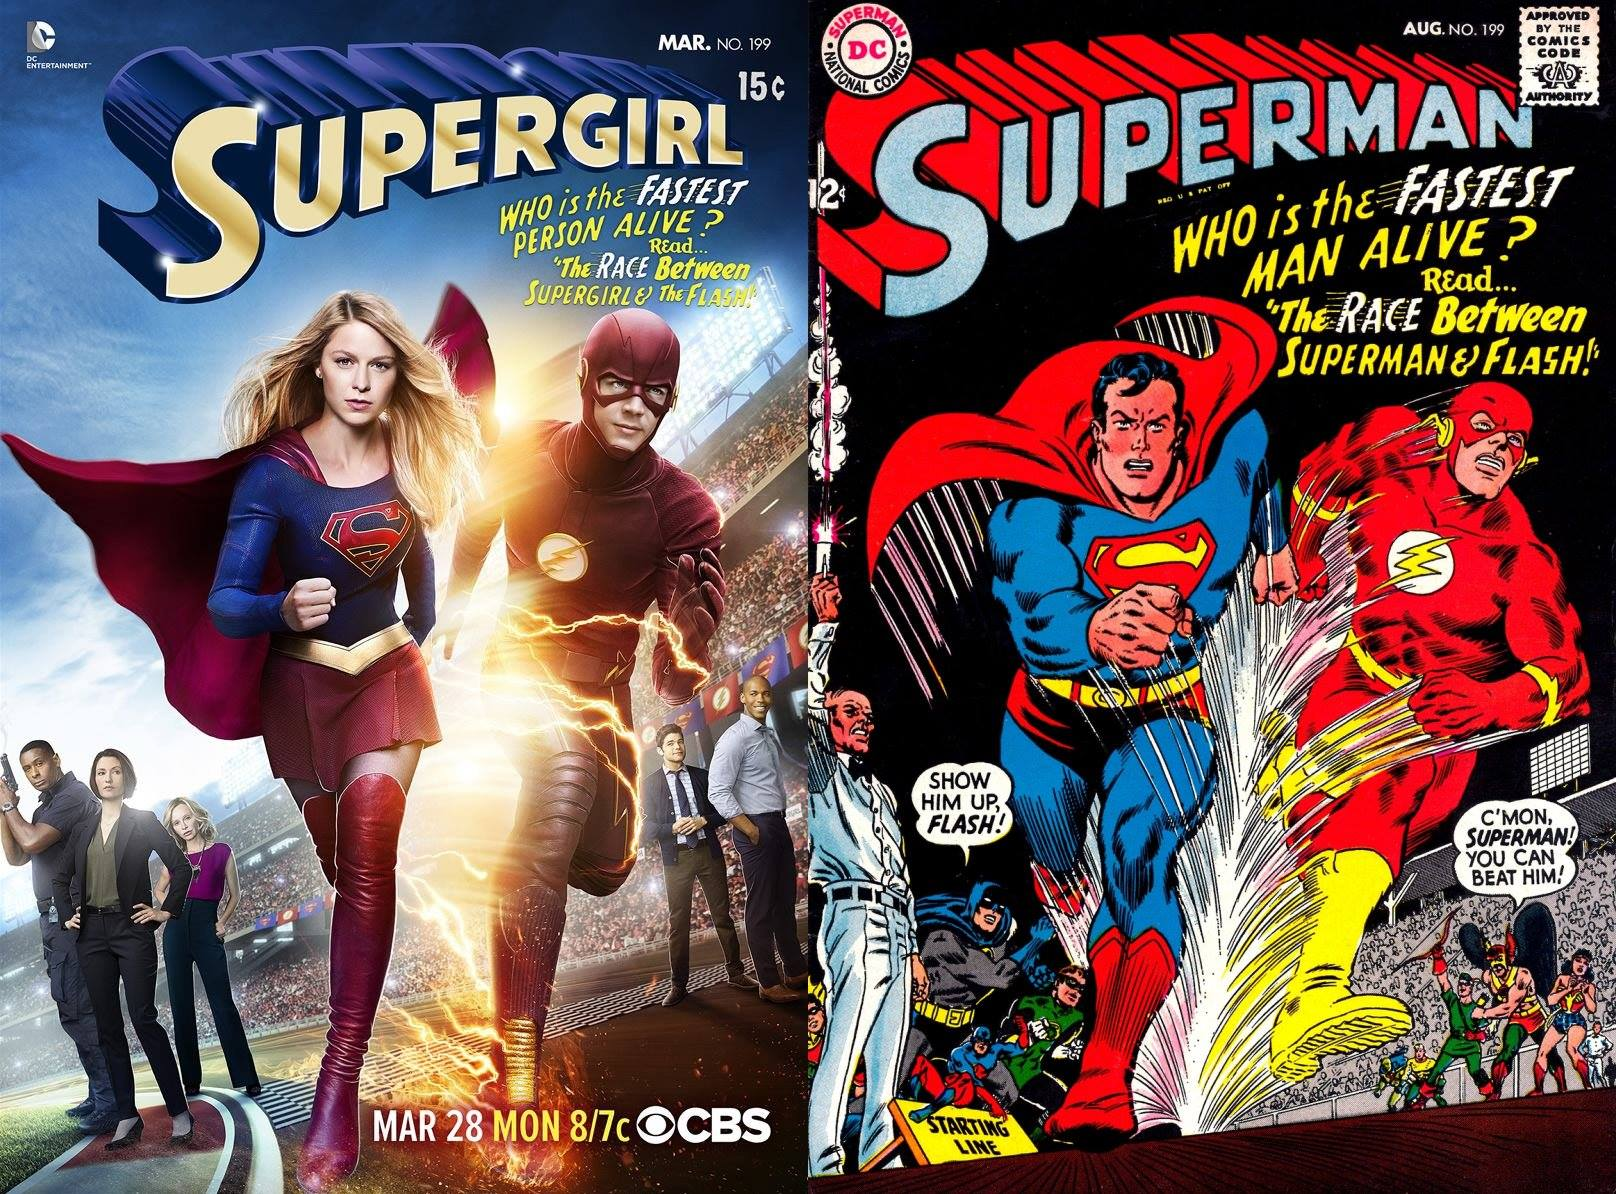 supergirl and the flash crossover poster pays homage to superman